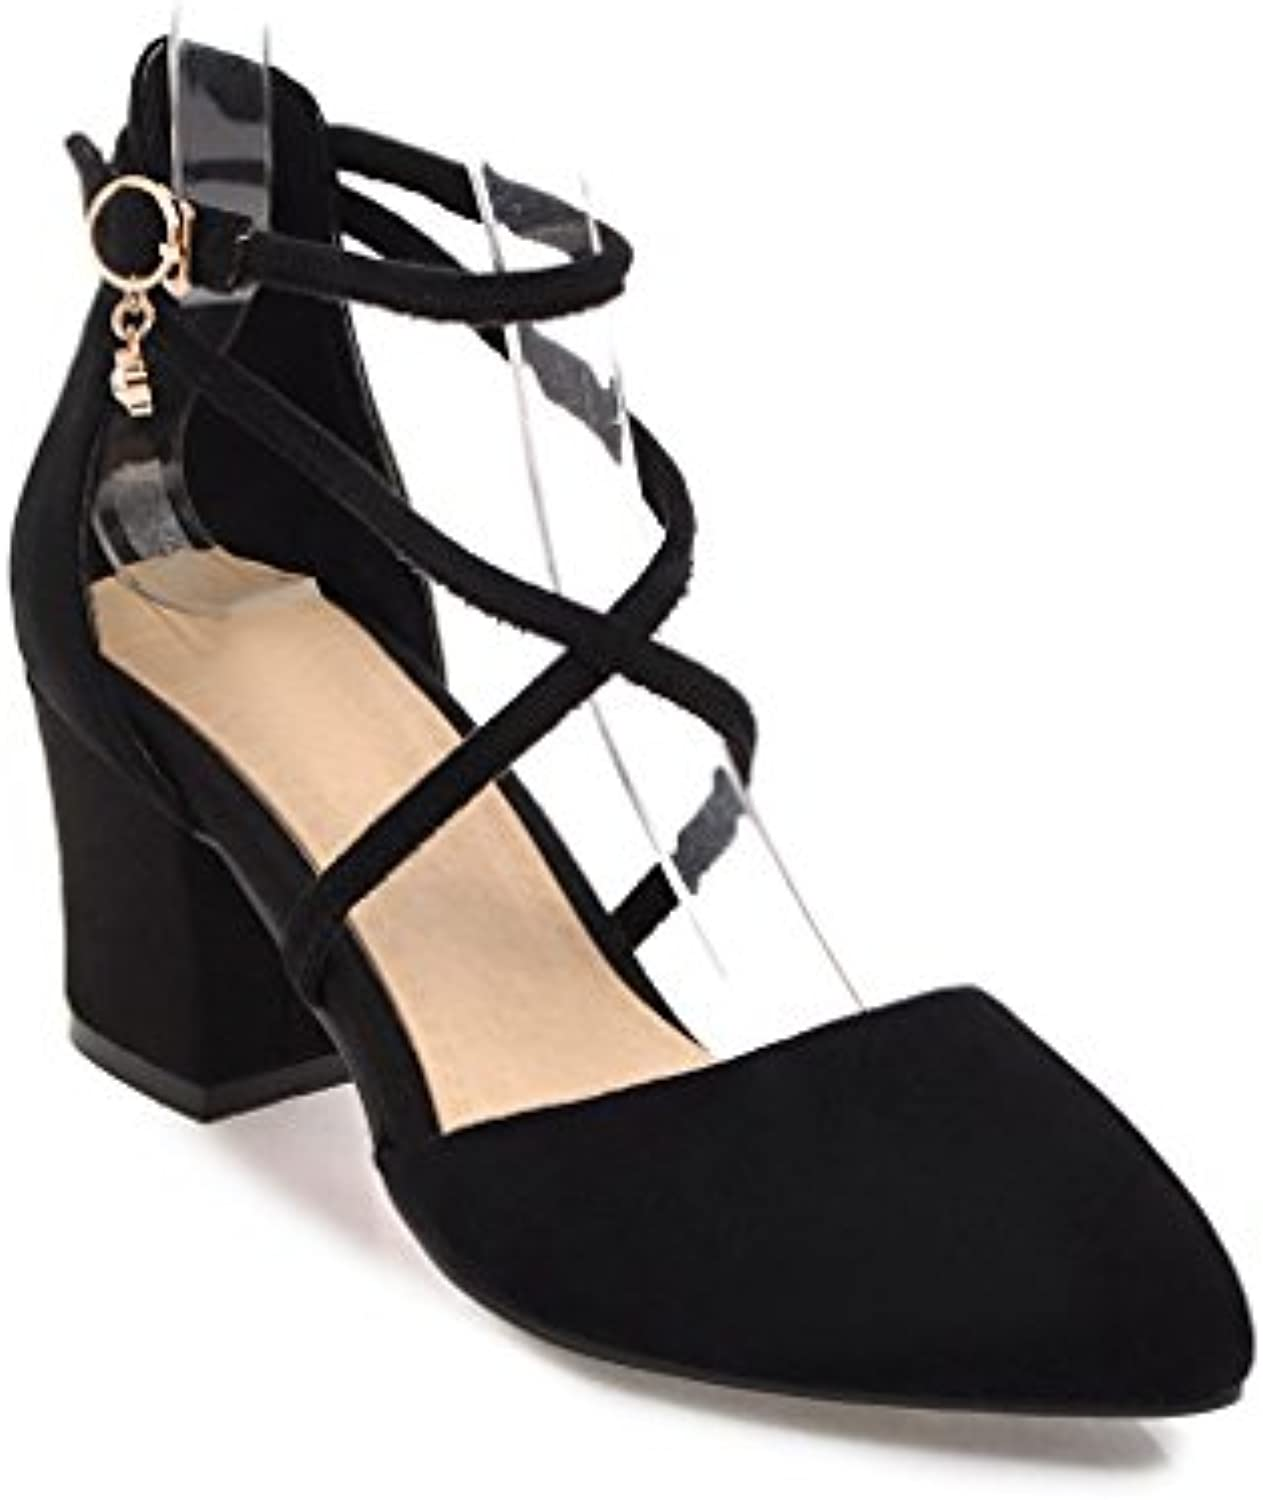 The thick comfortable size with high-heeled sandals, black hollow women,35